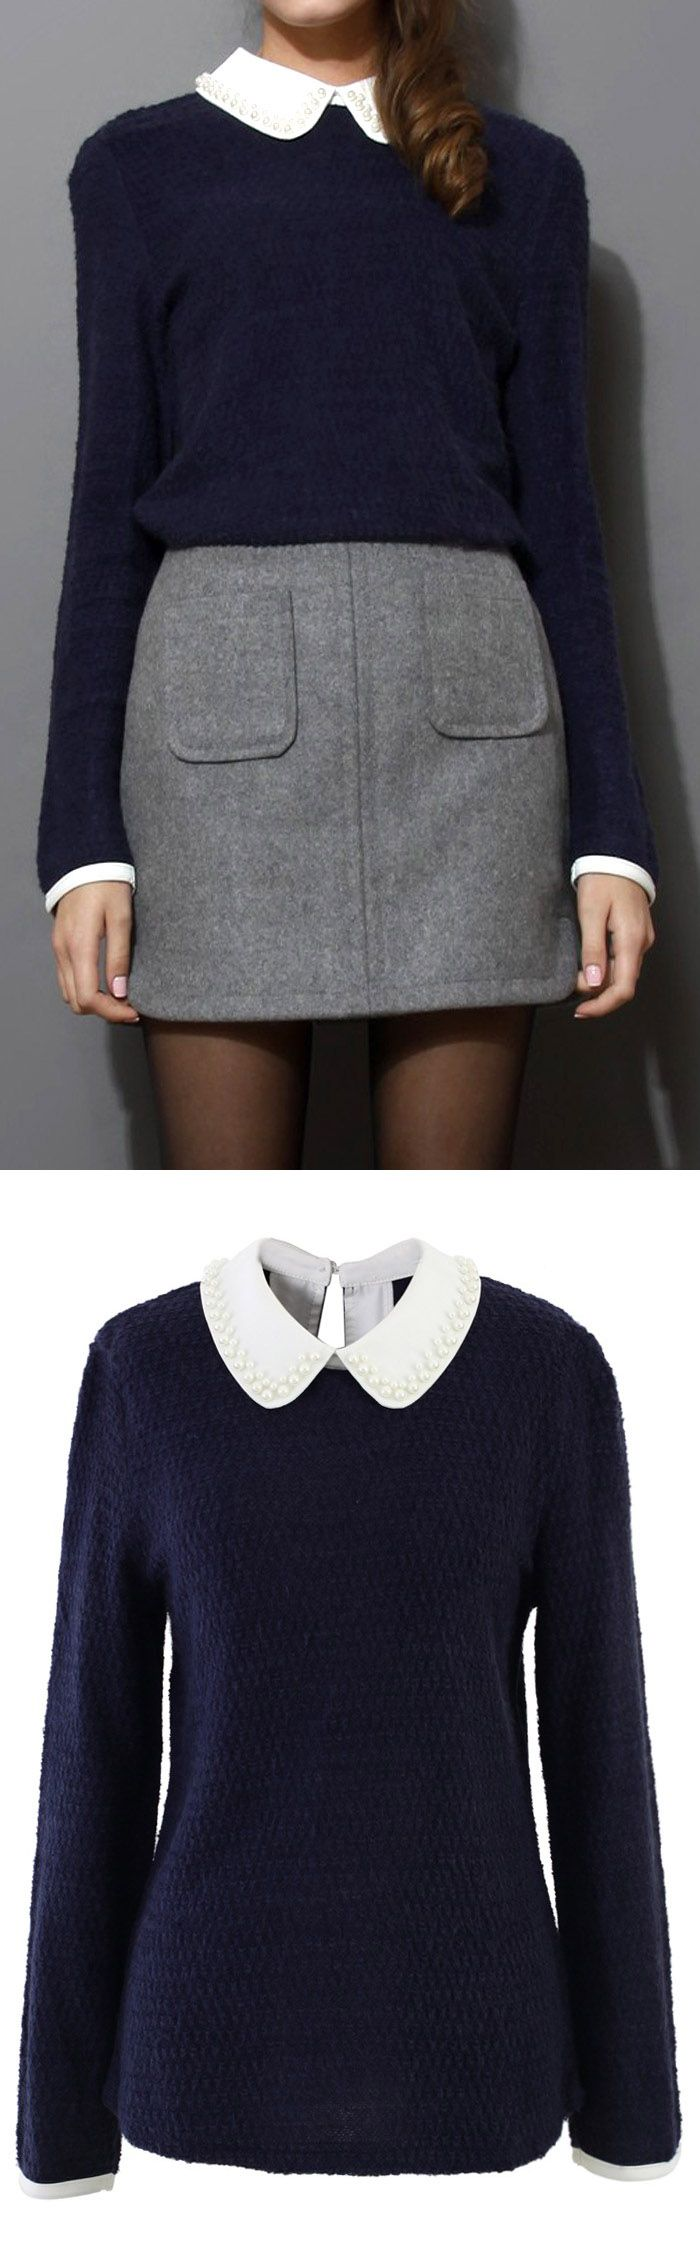 7bf55abd6db53 Pearly Peter Pan Collar Top in Navy Blue